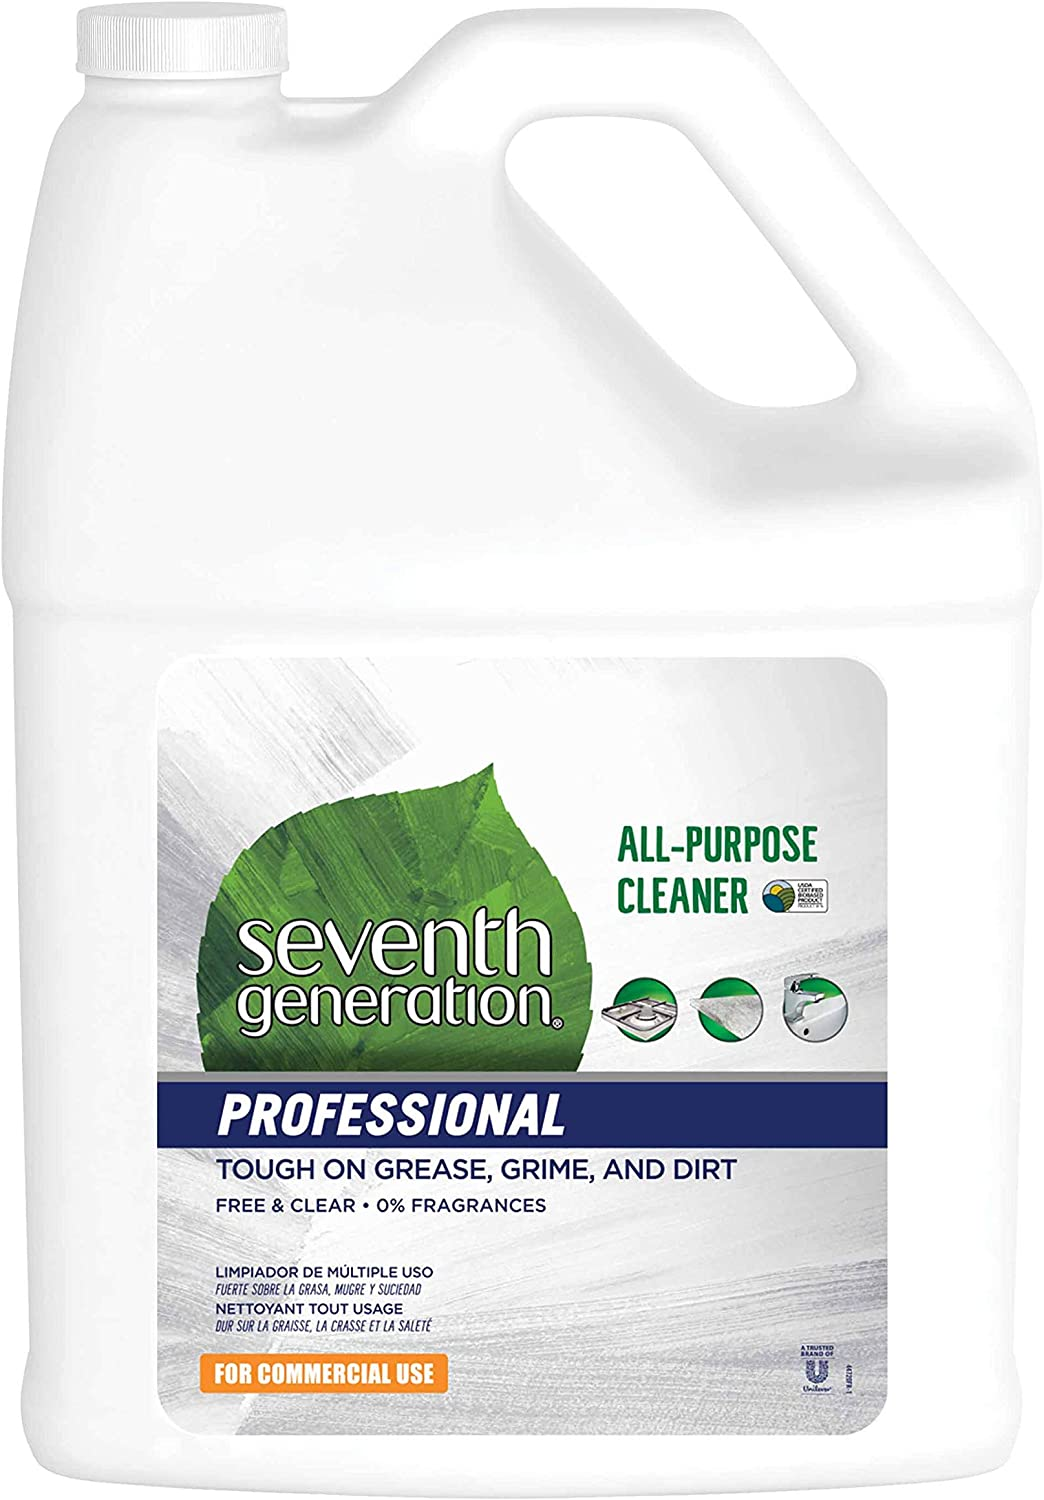 Seventh Generation Professional All-Purpose Cleaner Refill, Free & Clear, Unscented, 128 fl oz (Pack of 2)